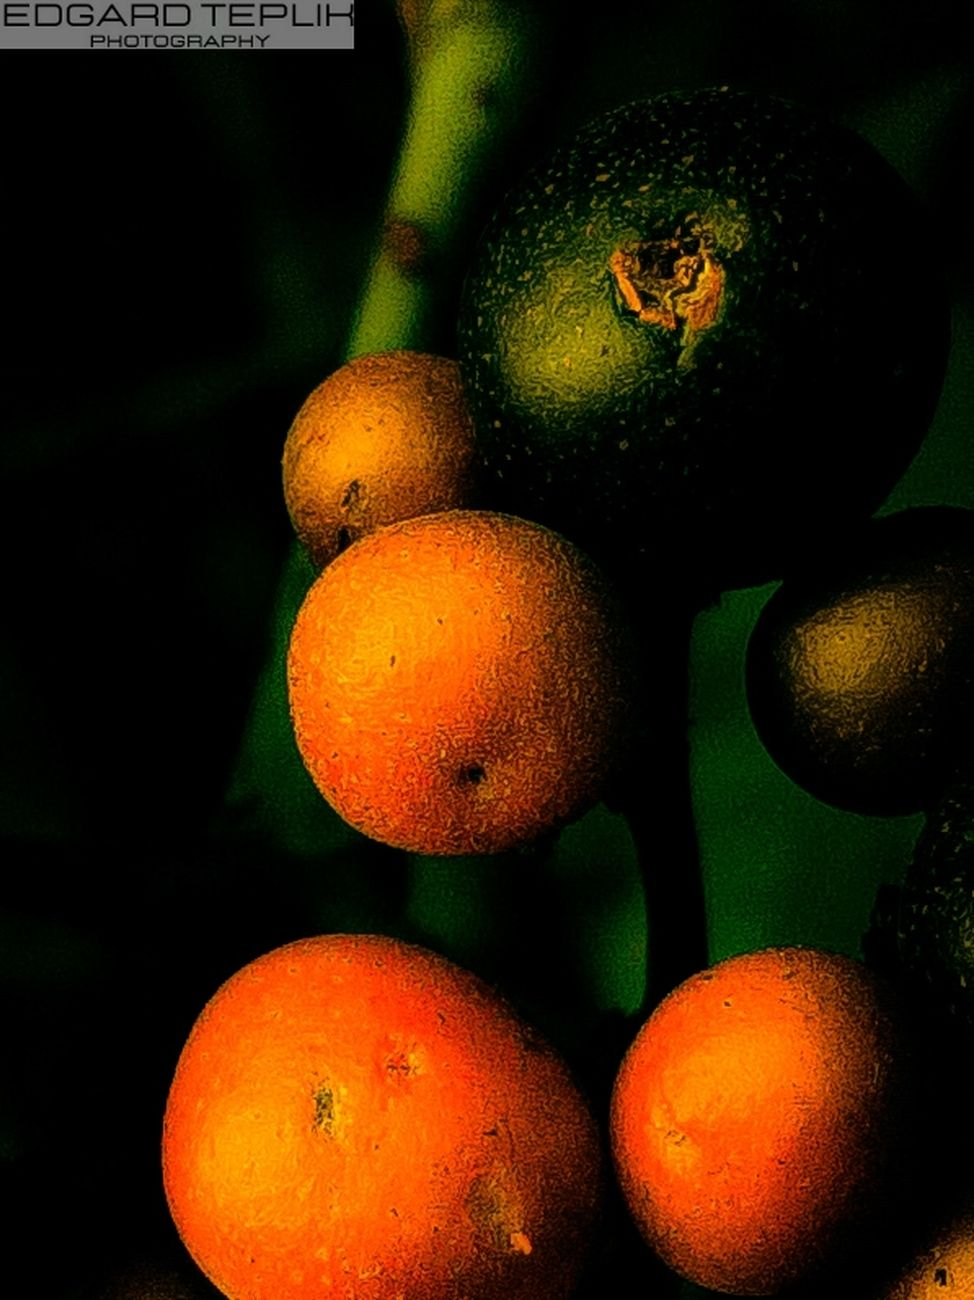 A beautiful contrast between small black fruits with orange tones, with a burst background.